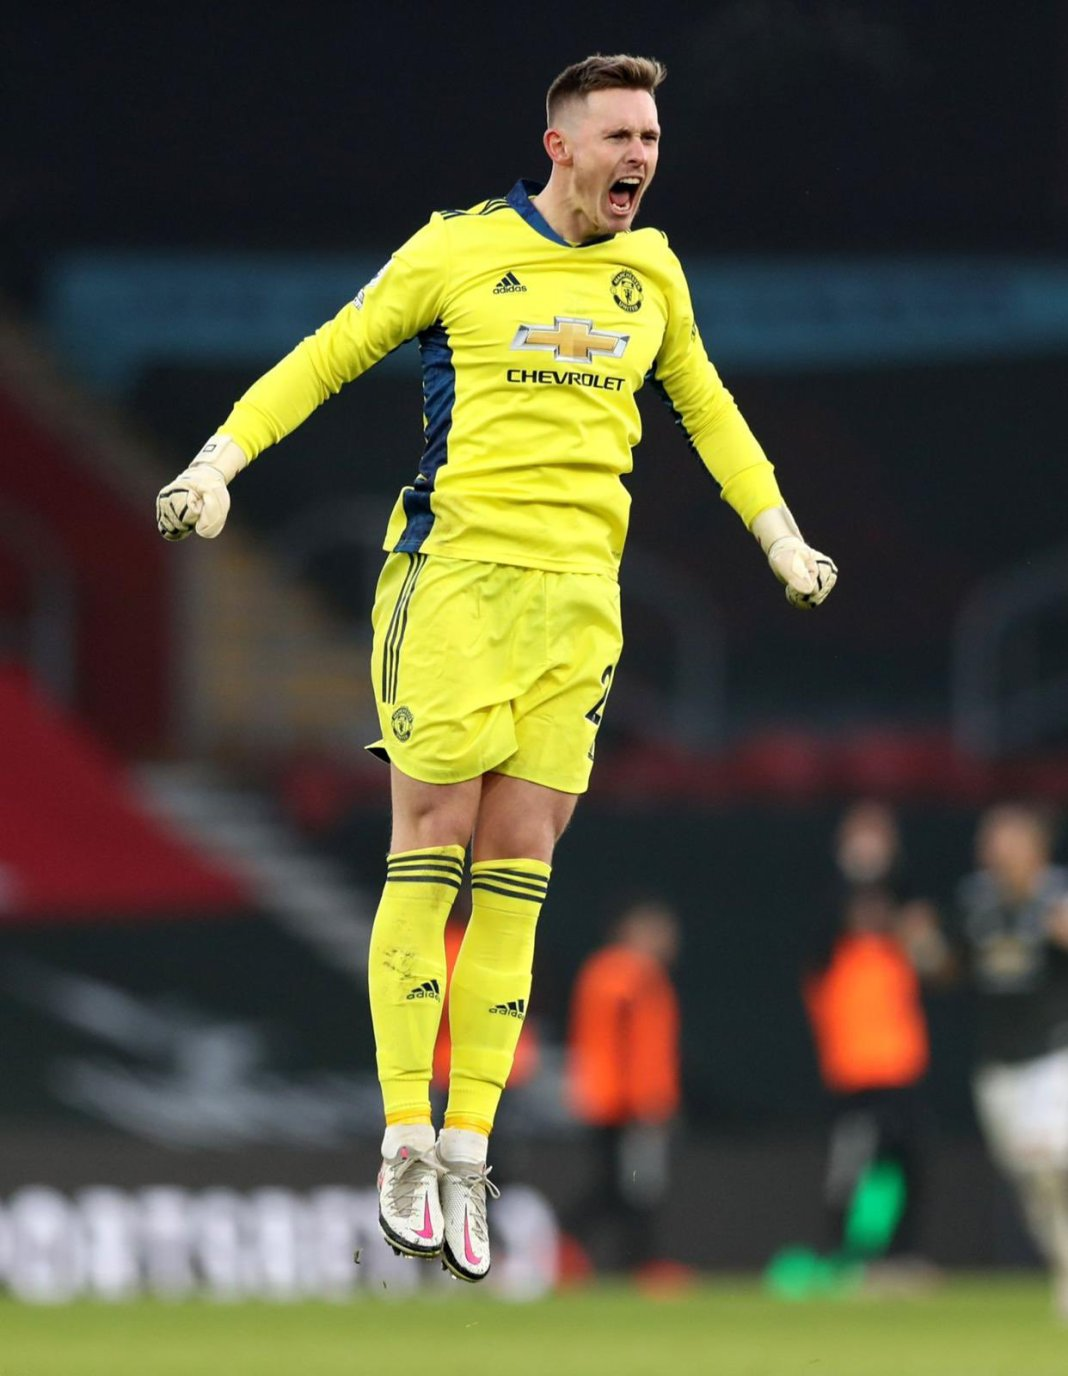 Dean Henderson for Man U against Southampton football - 20201129 174948 - Football: Dean Henderson speaks after comeback debut win for Manchester United